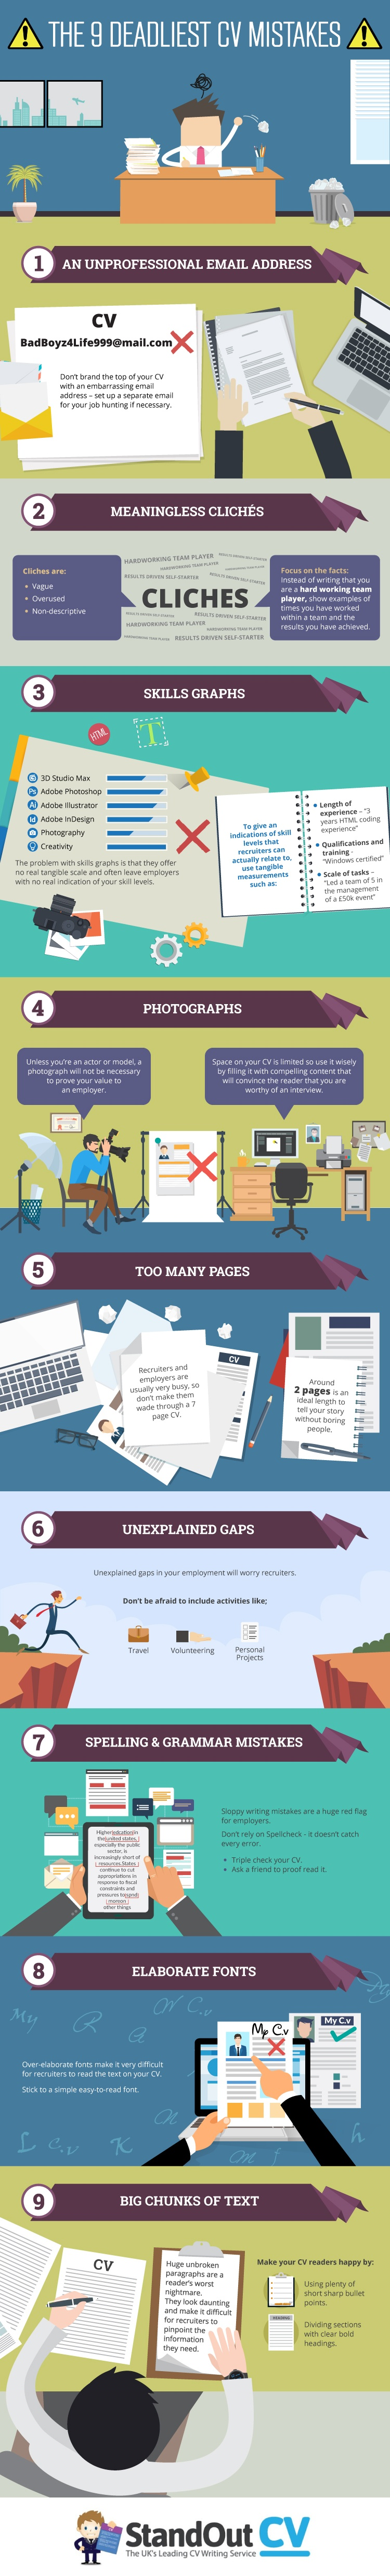 Ways To Make A Resume Employers Will Hate Infographic